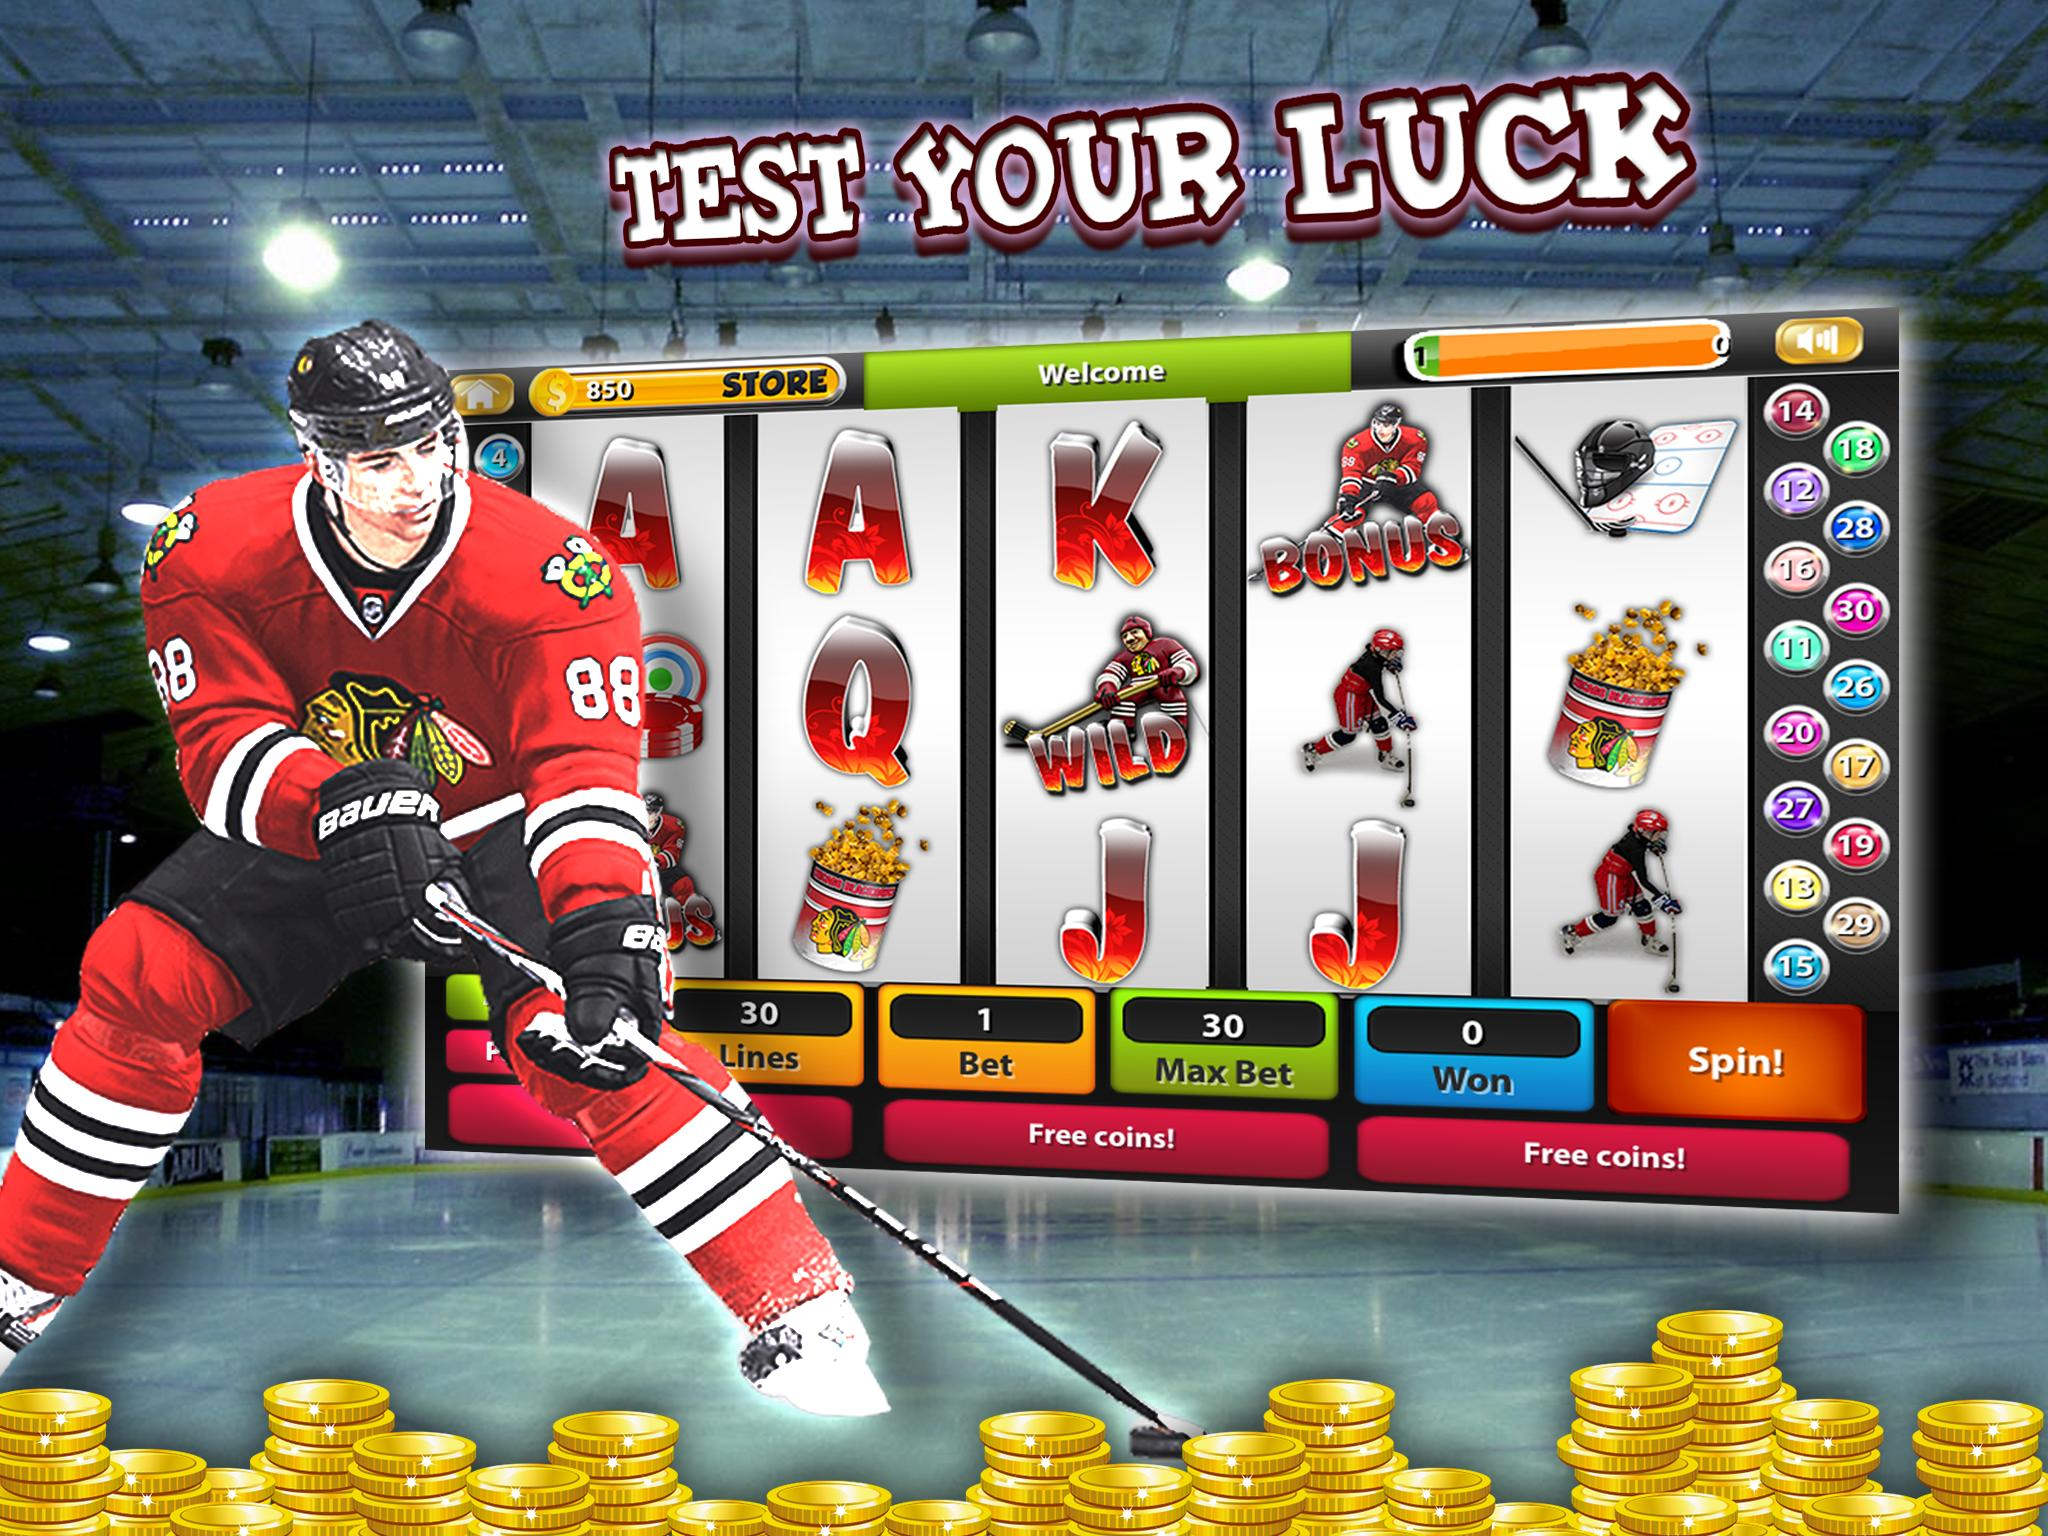 Ice Hockey Slot Machine Casino for Android - APK Download